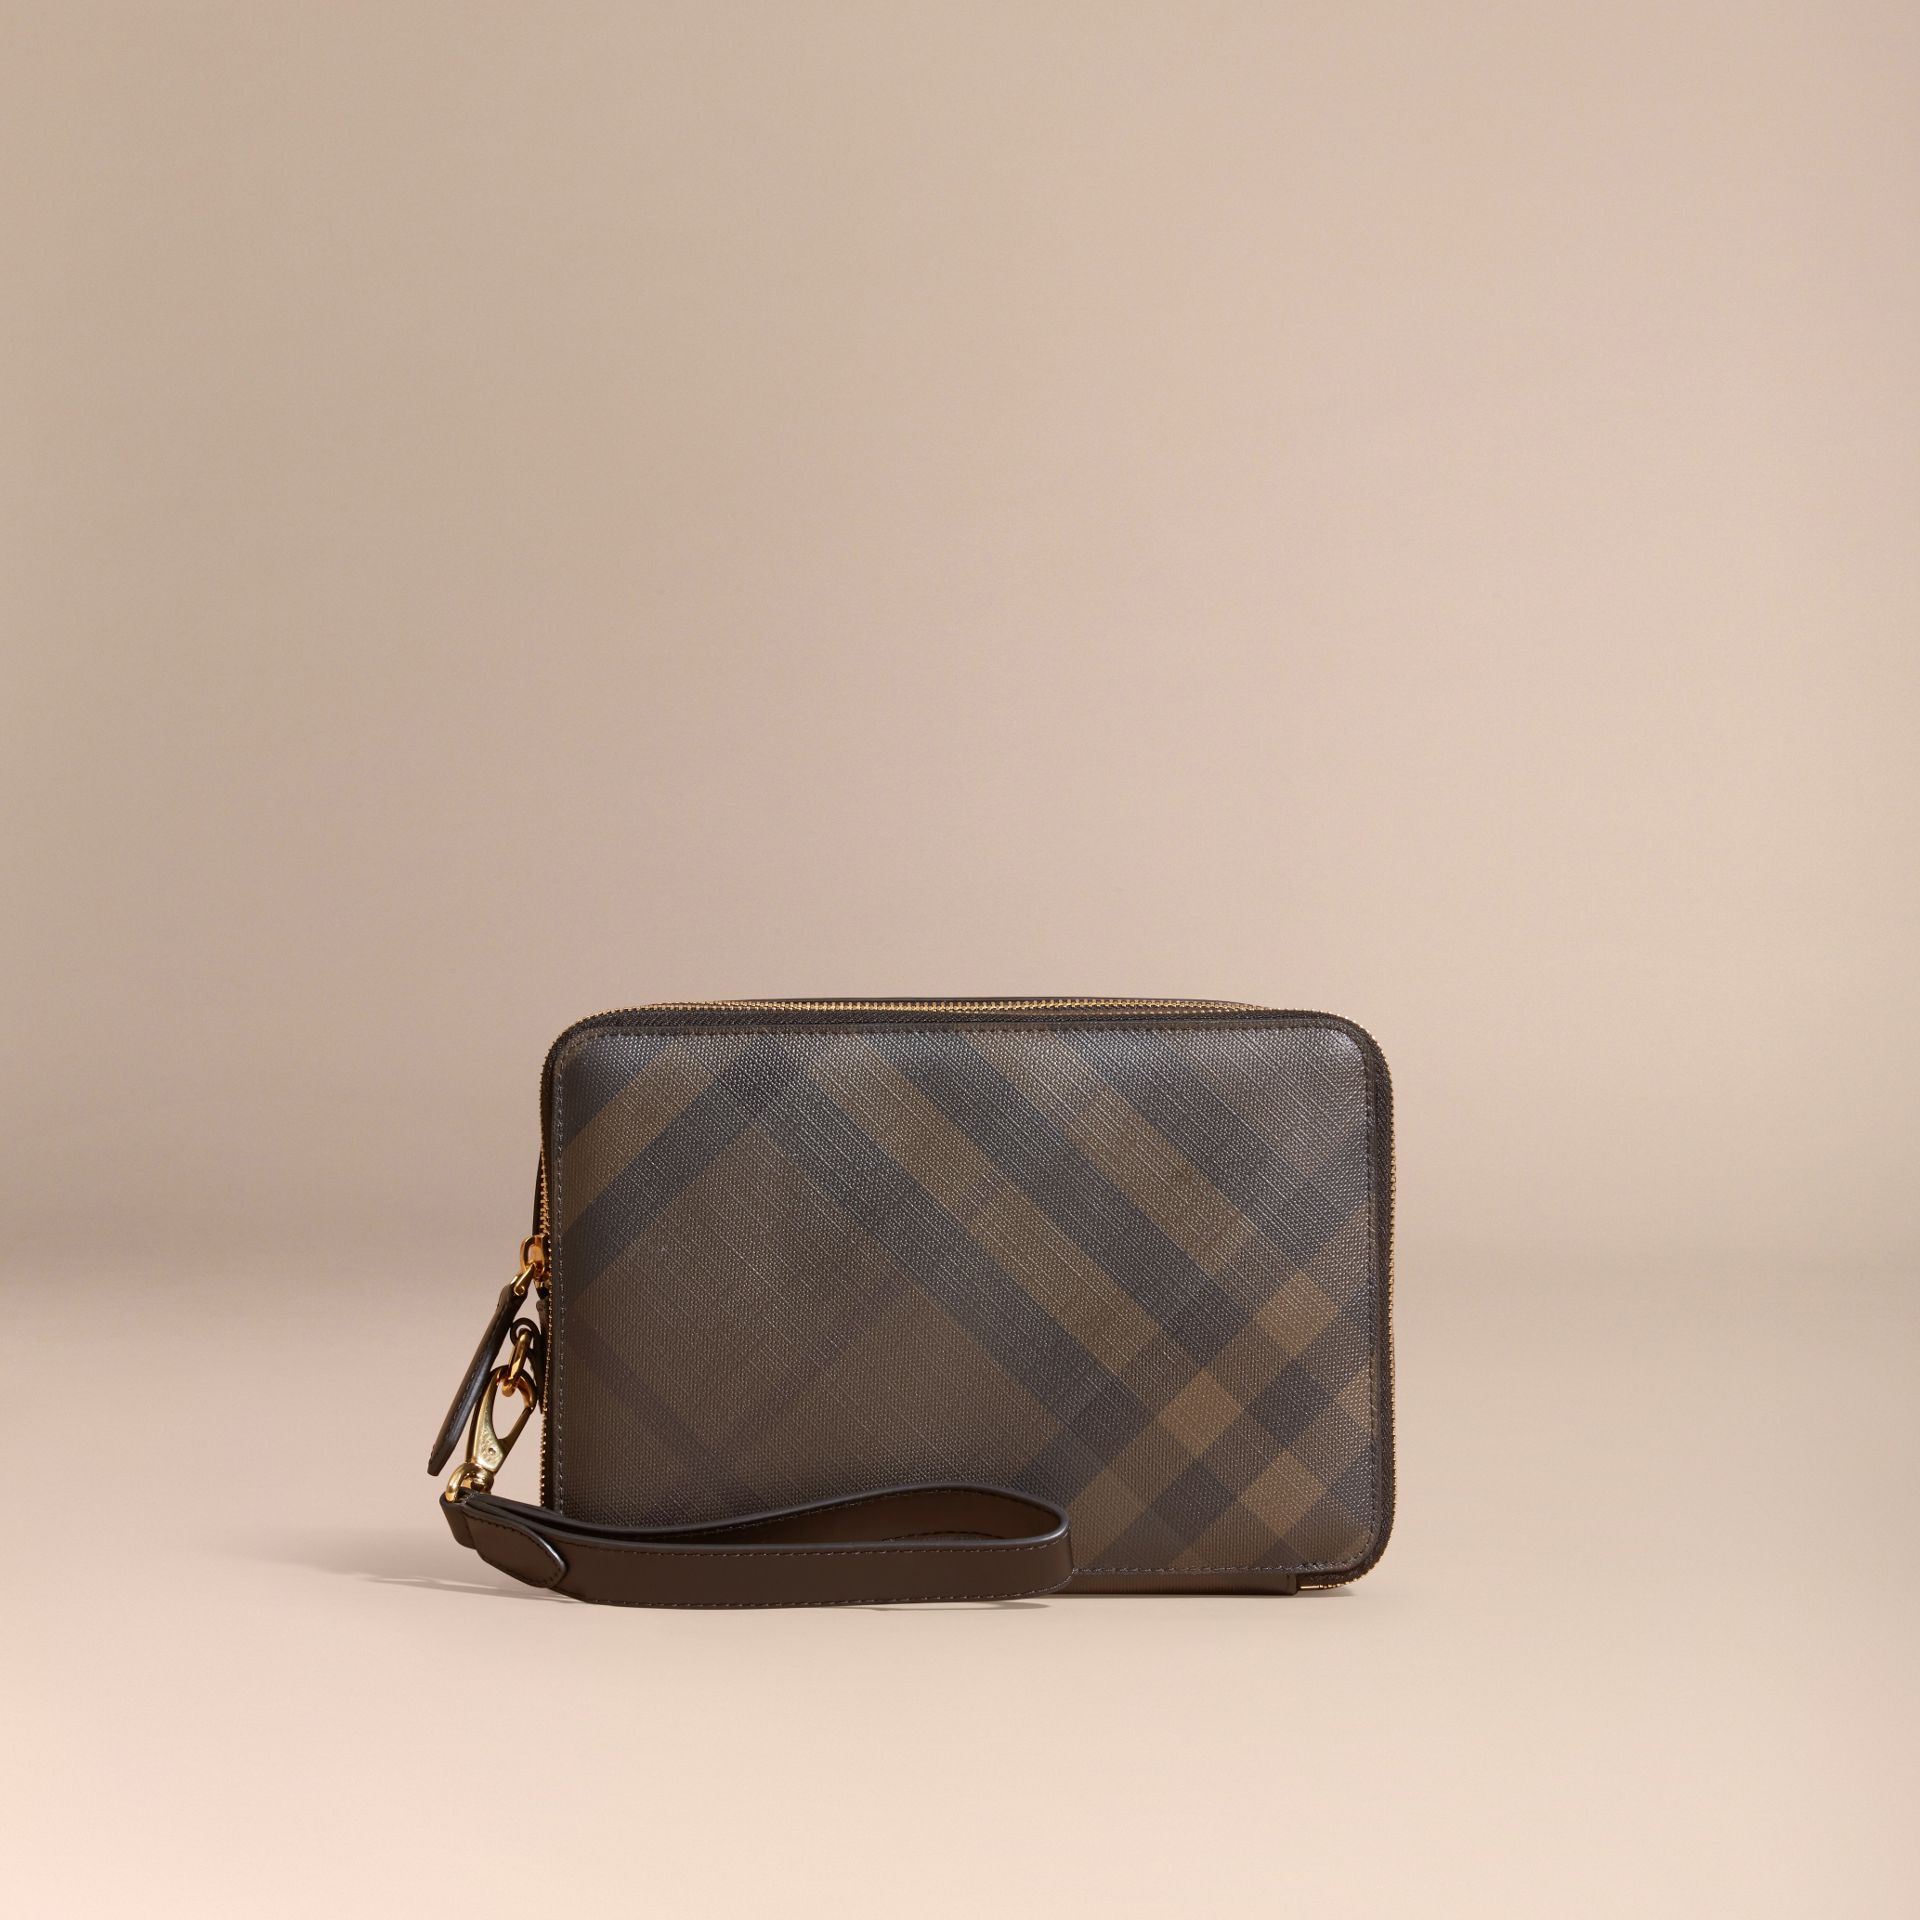 Leather-trimmed London Check Pouch in Chocolate/black - Men | Burberry United States - gallery image 6